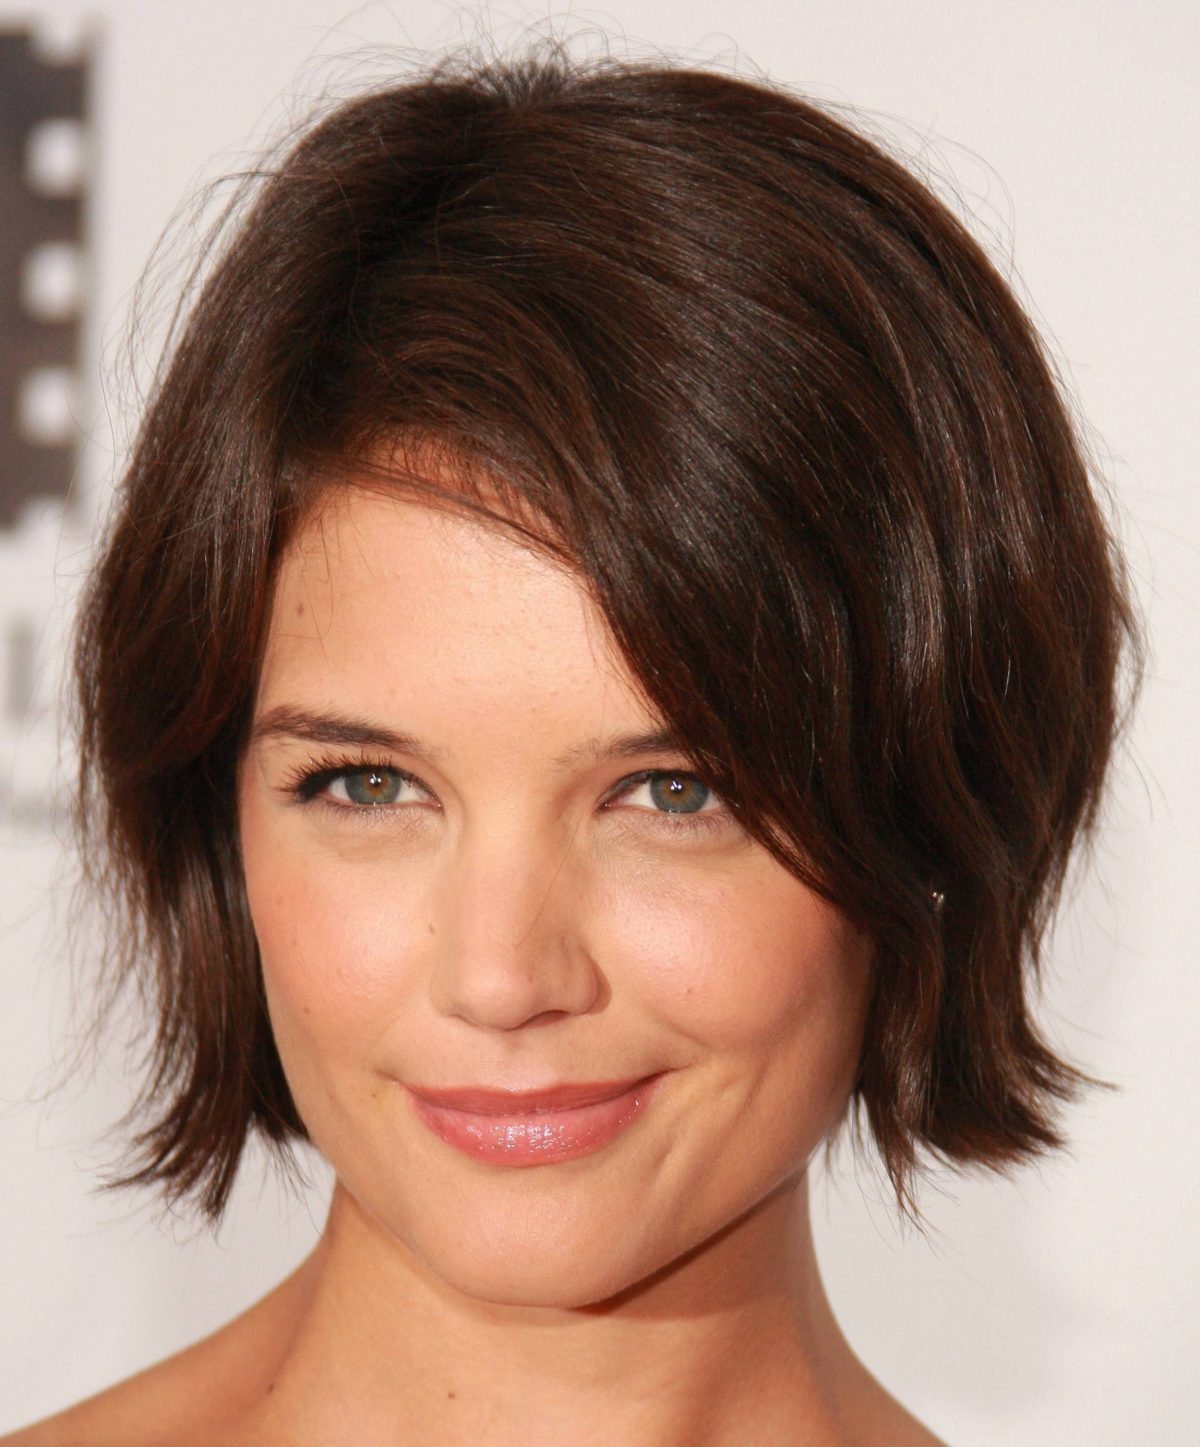 Best Short Hairstyles – Cute Hair Cut Guide For Round Face Shape Inside Short Girl Haircuts For Round Faces (View 2 of 25)